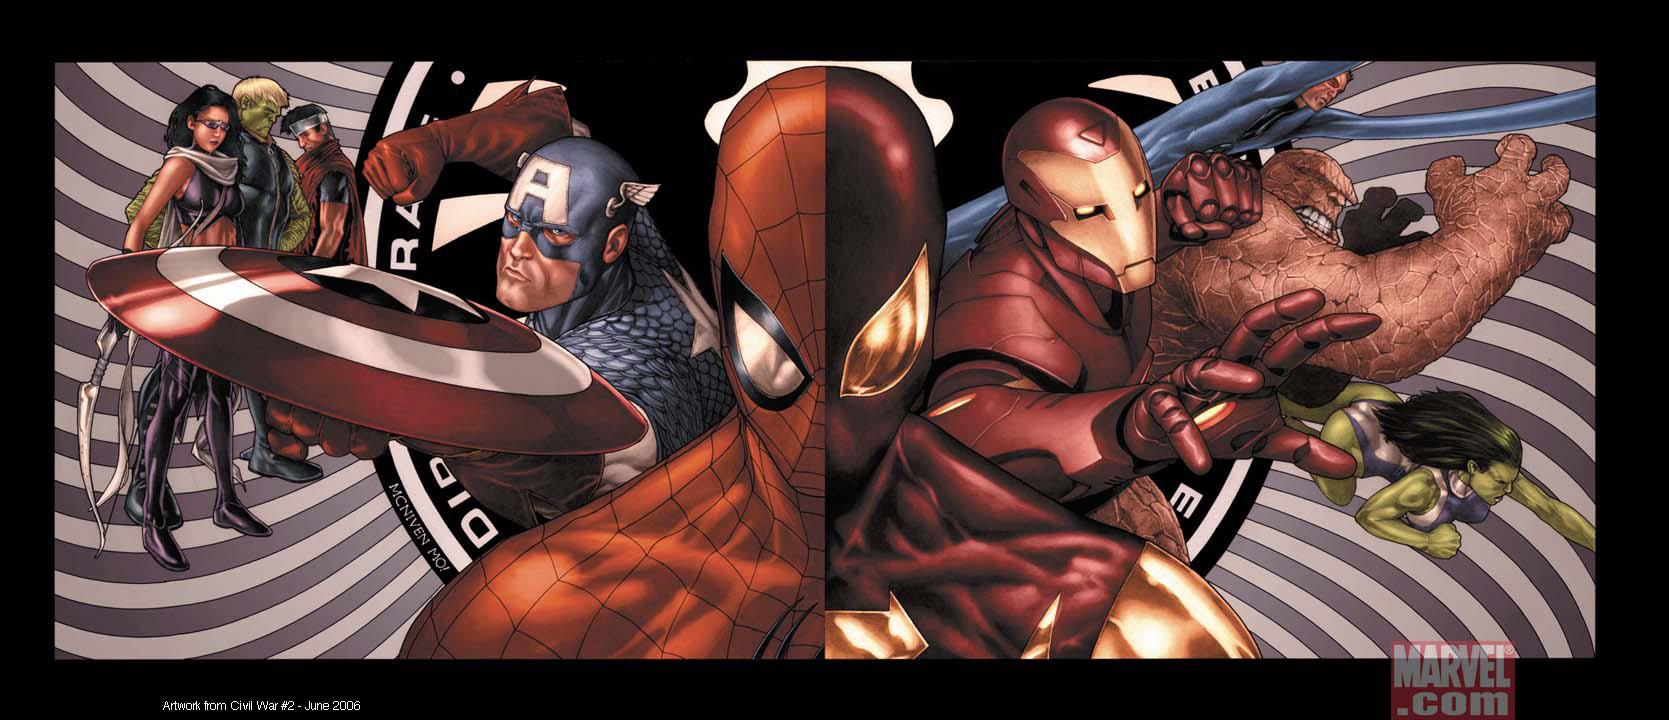 La cover di uno dei volumi di Civil War con Spider-Man